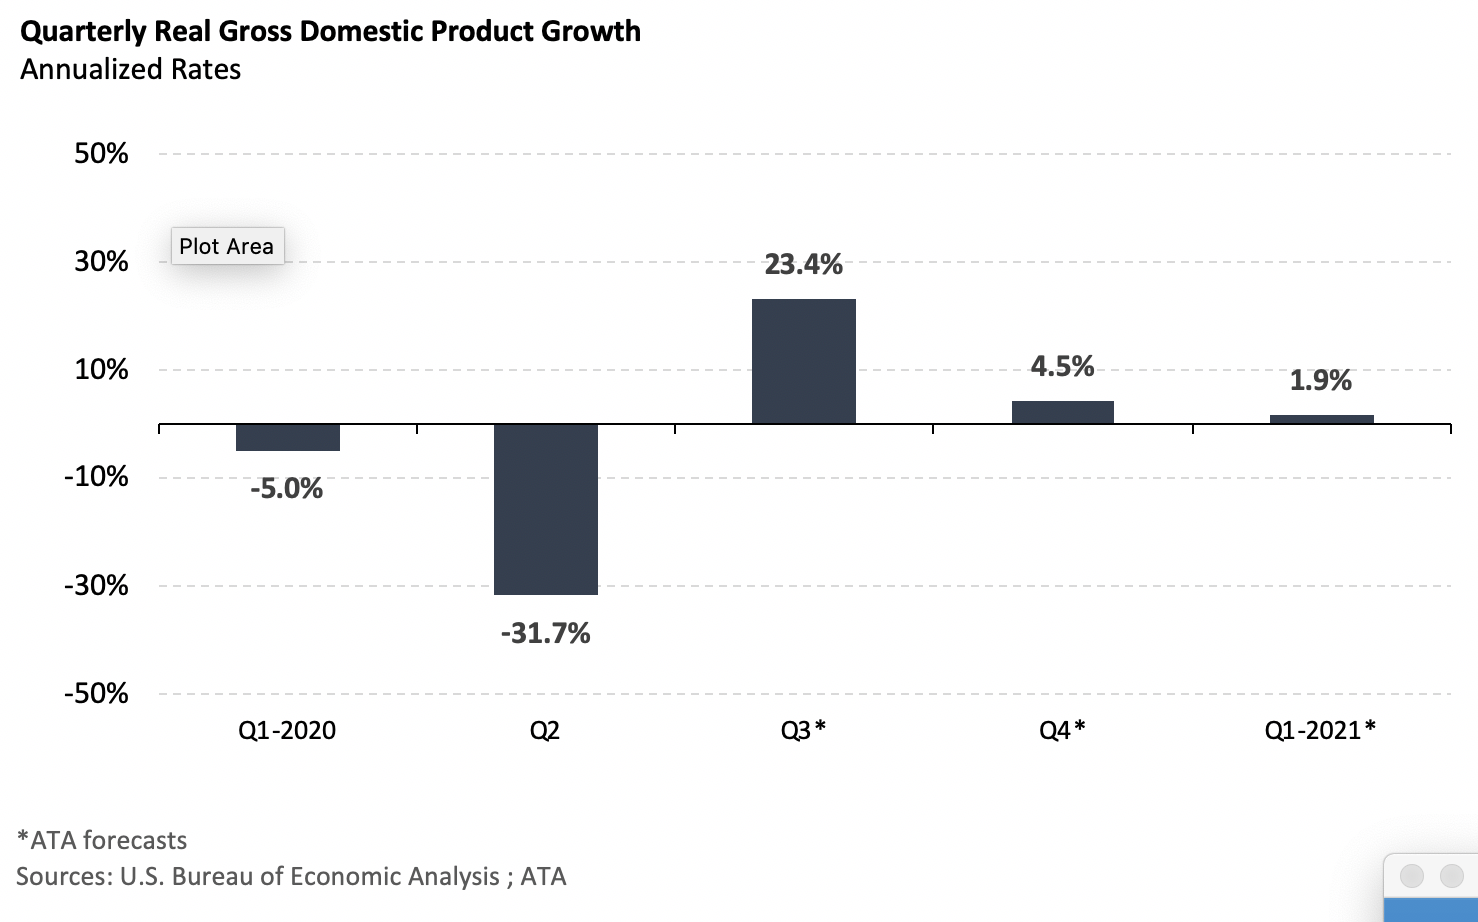 Quarterly Real Gross GDP